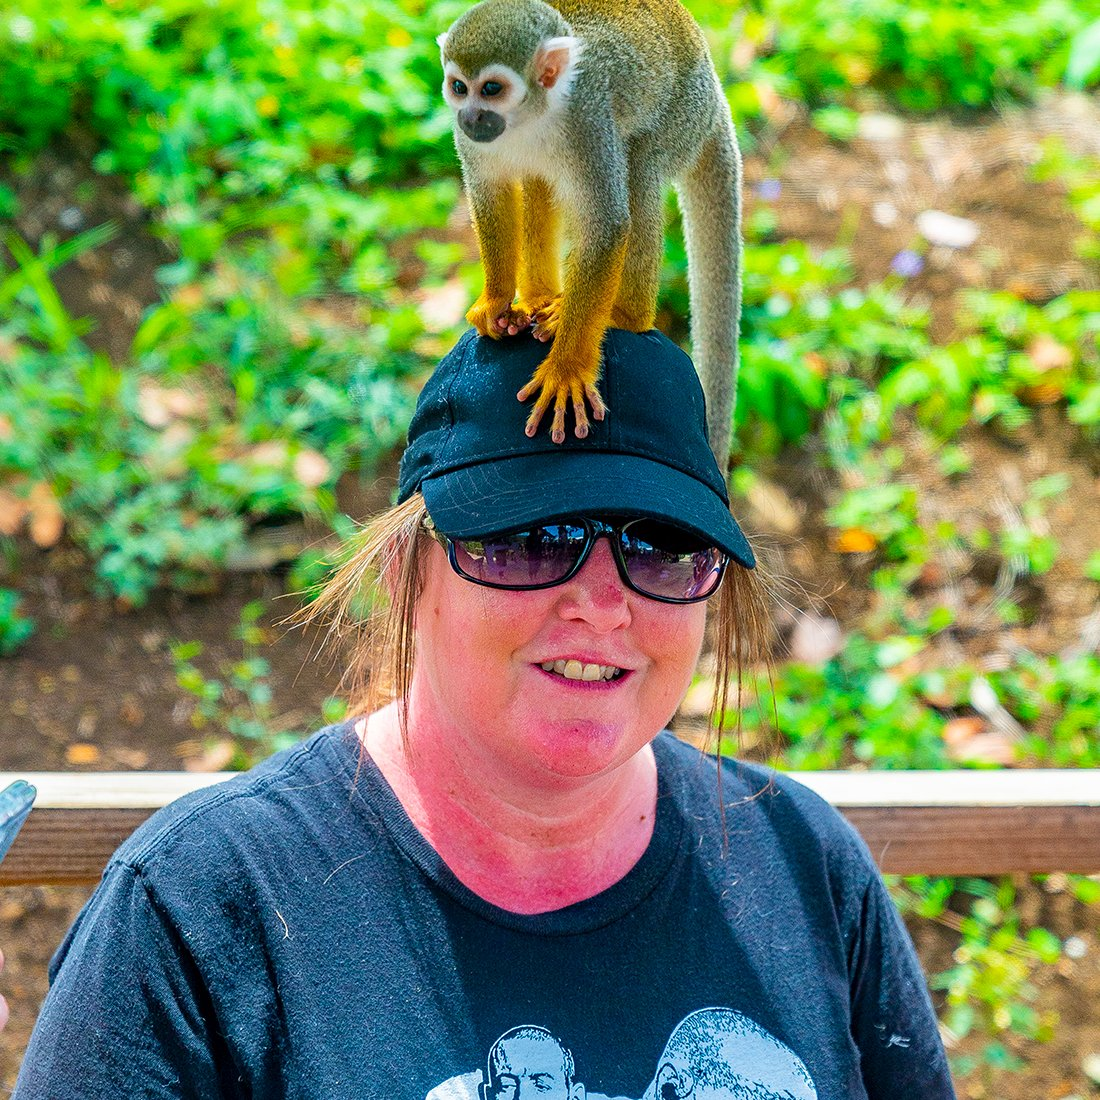 interacting with friendly monkey at monkey jungle park